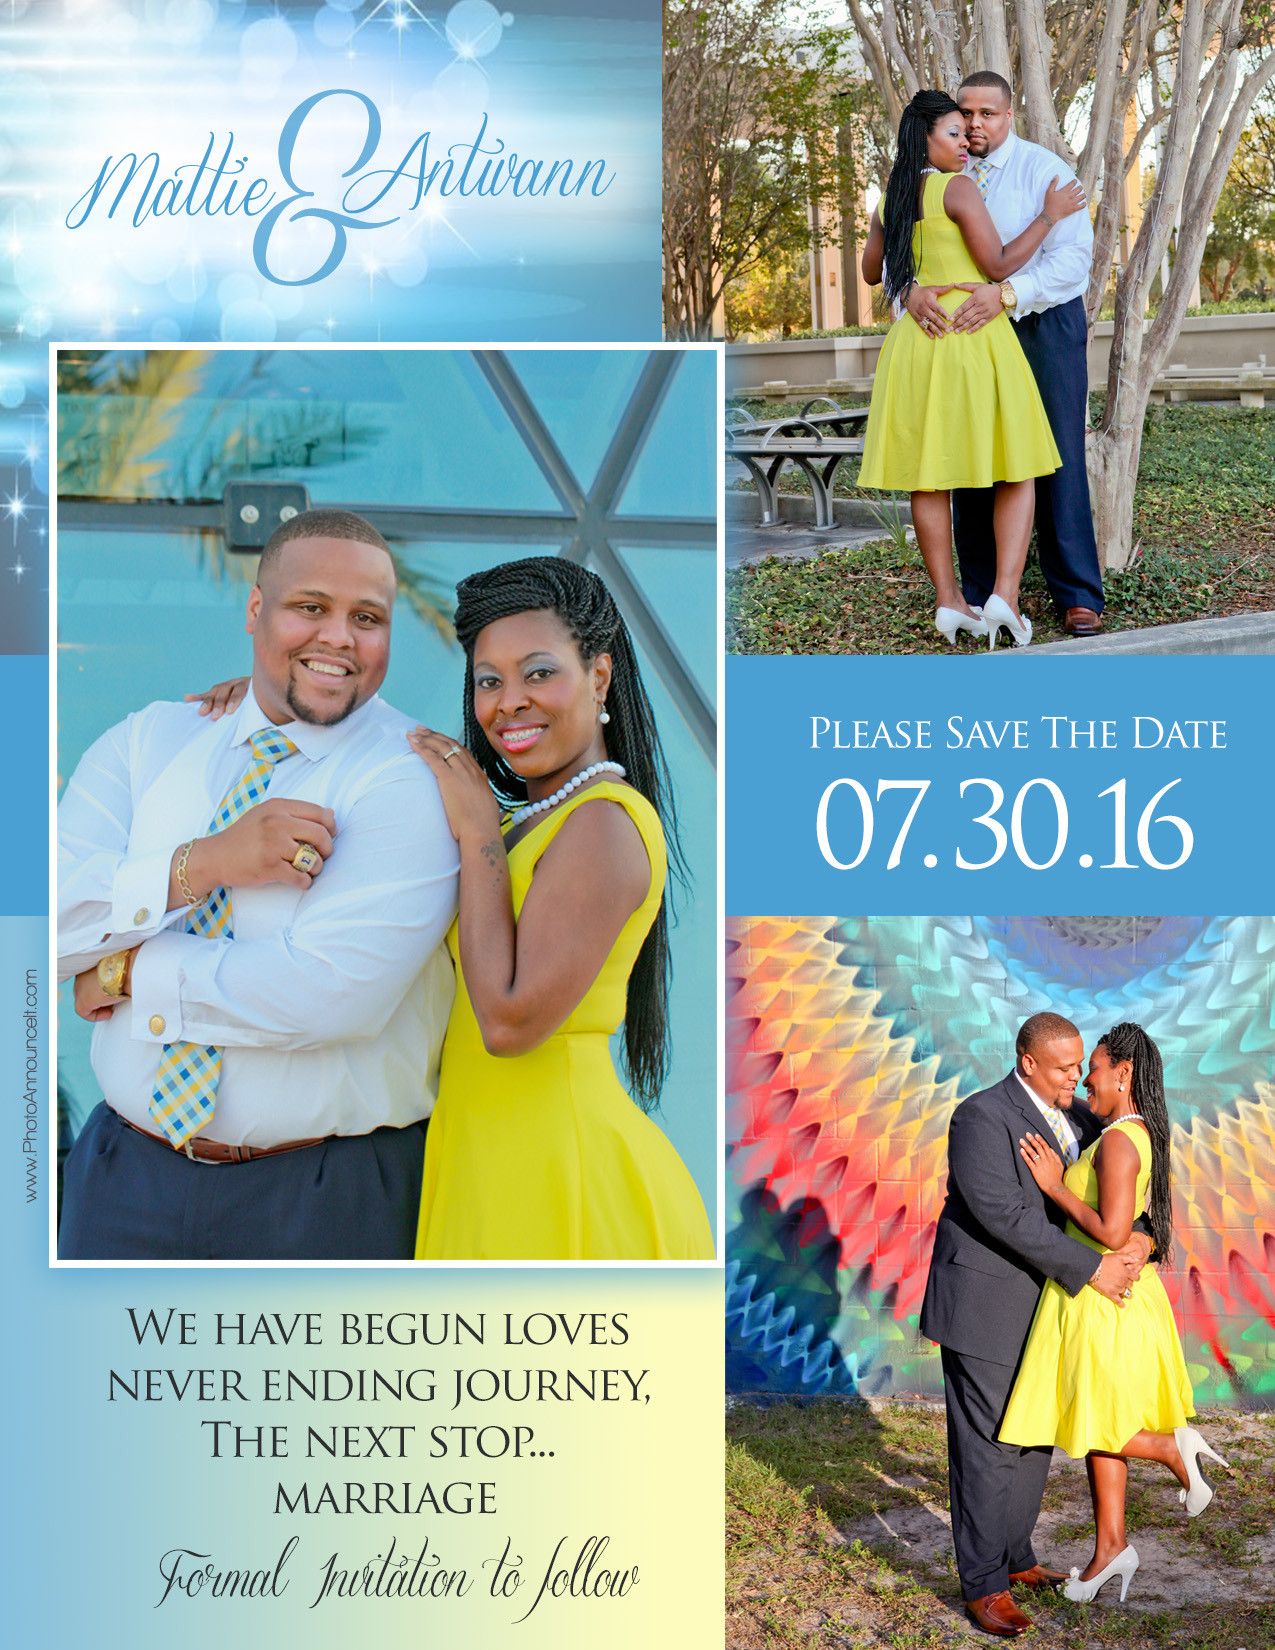 Save The Date Proof 1.jpg